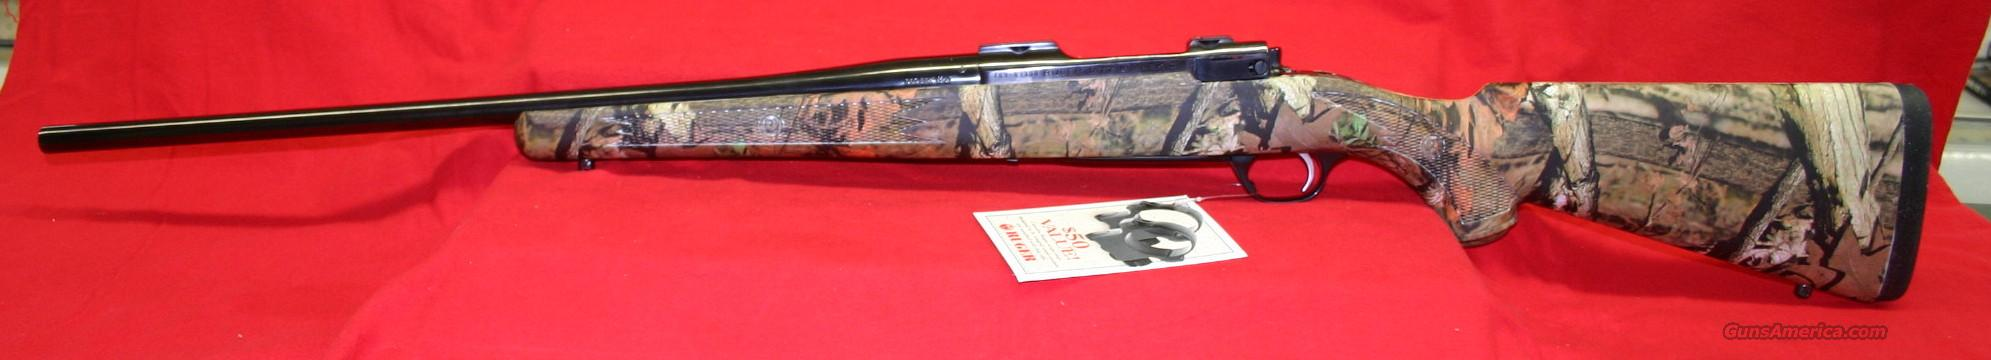 Ruger 77 350Rem Camo  Guns > Rifles > Ruger Rifles > Model 77